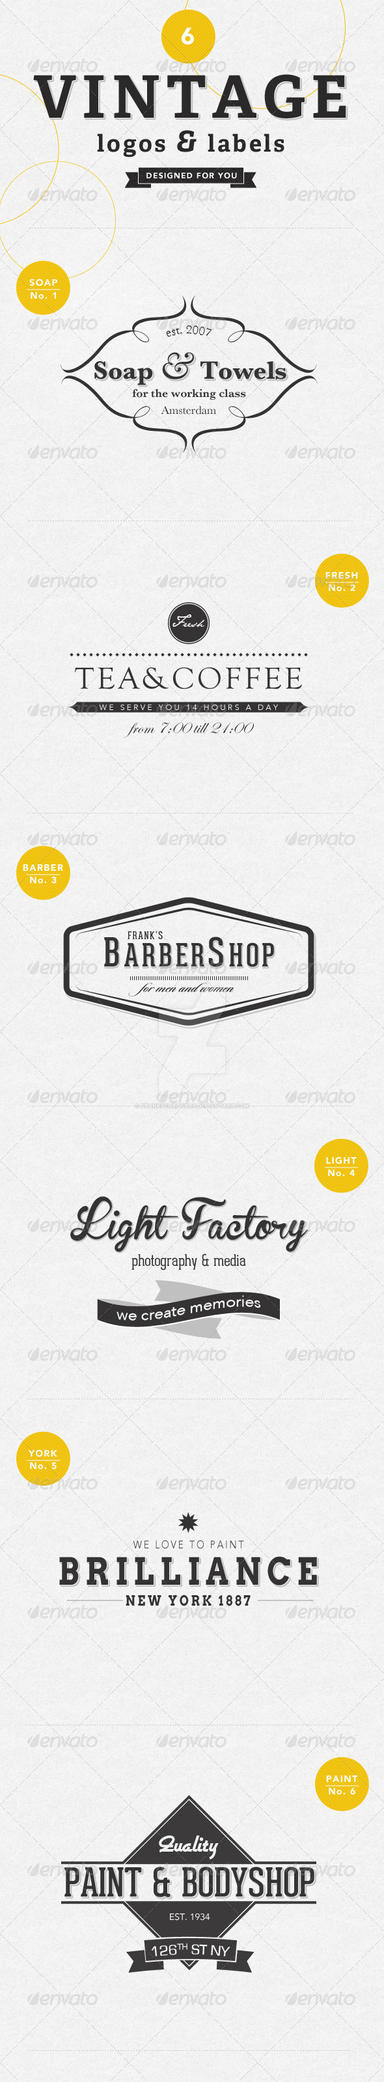 6 Vintage Labels and Logos by frankschrijvers